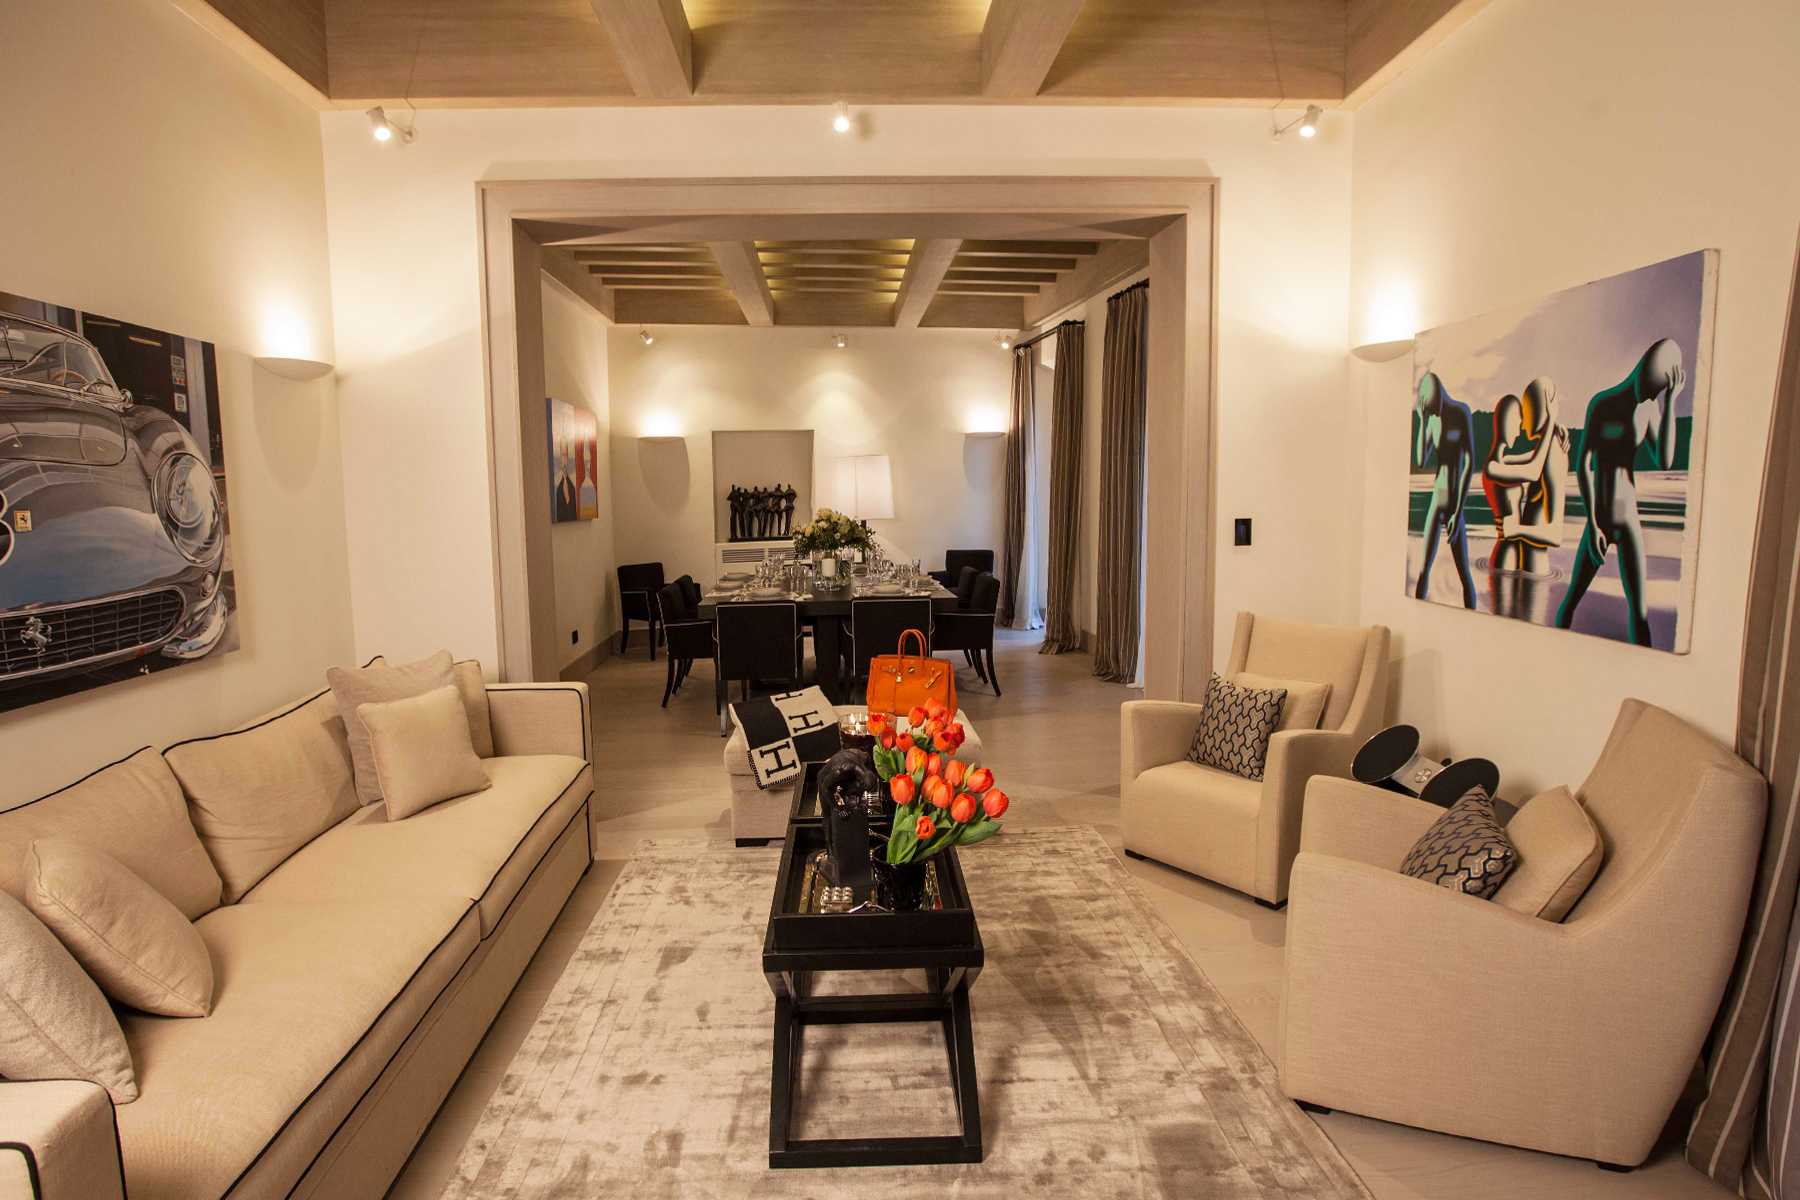 Apartment for Sale at Luxurious condo apartment in a 16th century building in Rome Rome, Rome Italy